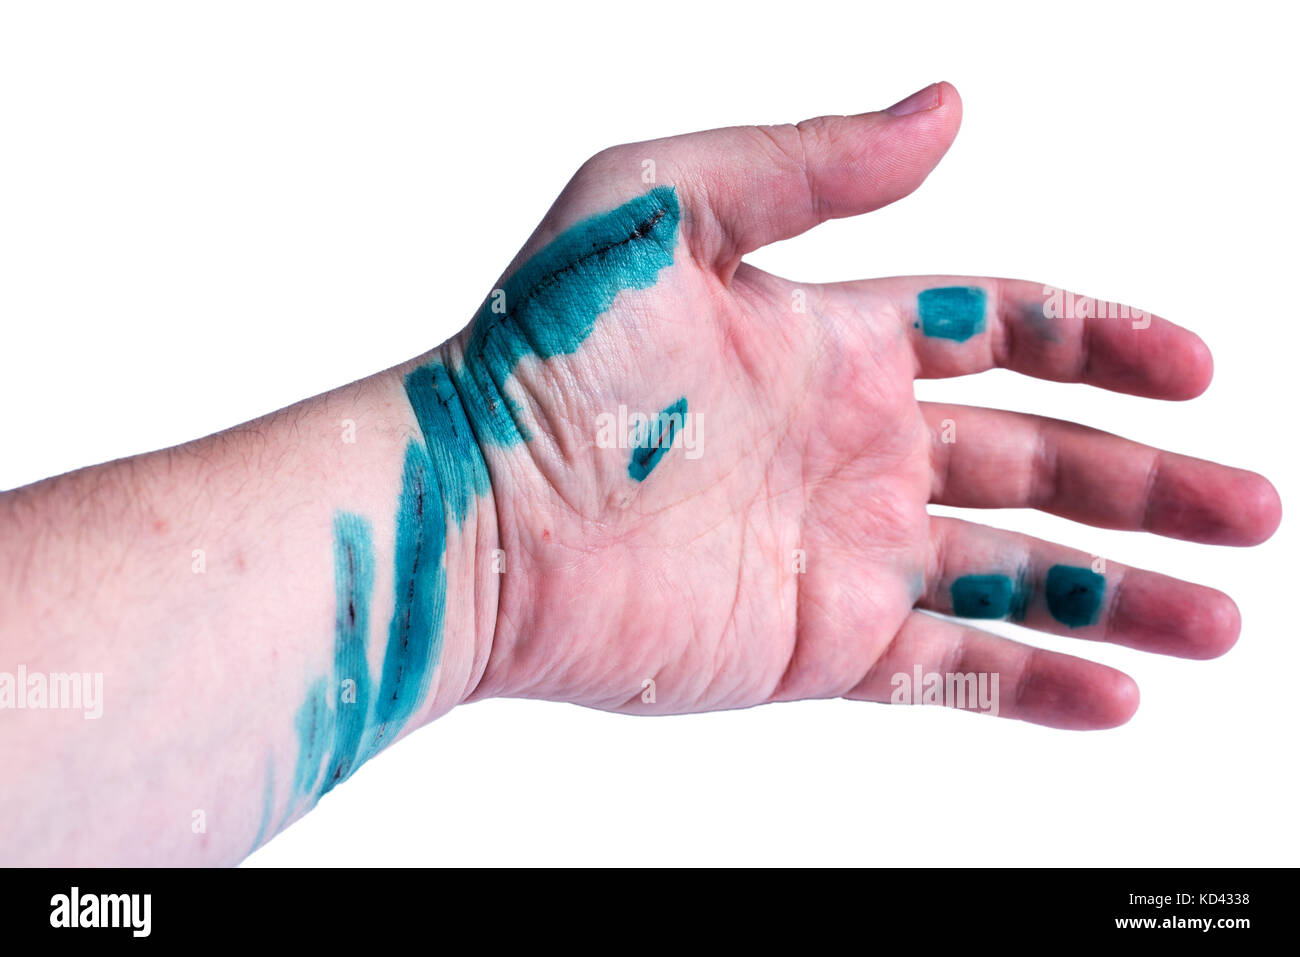 scratched hand treated with antiseptic - Stock Image